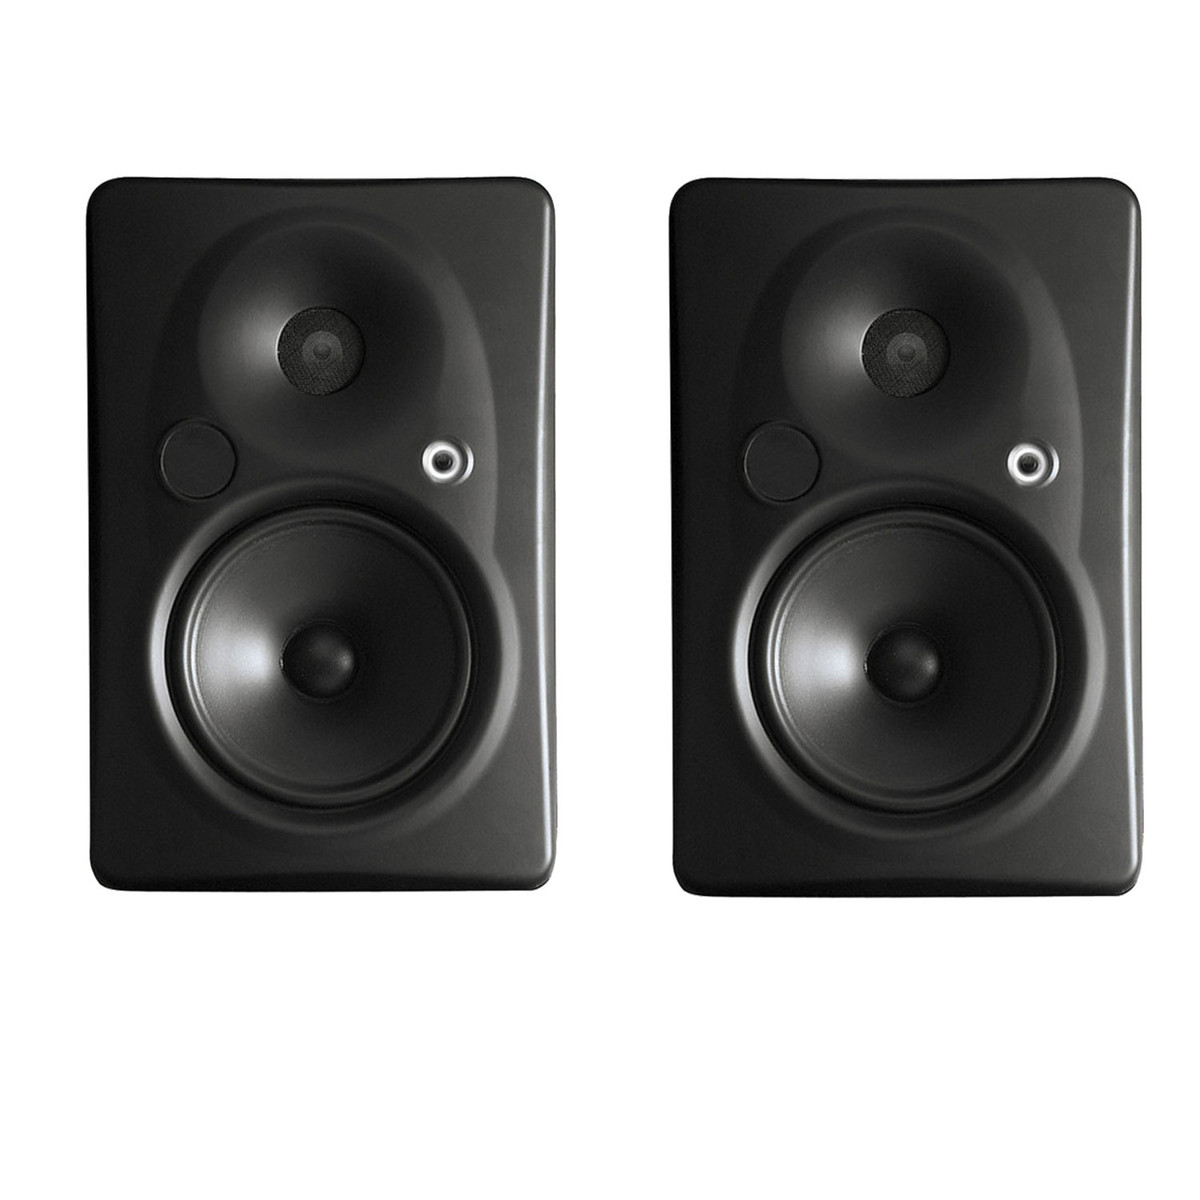 mackie hr824 mk2 active monitors pair at gear4music. Black Bedroom Furniture Sets. Home Design Ideas